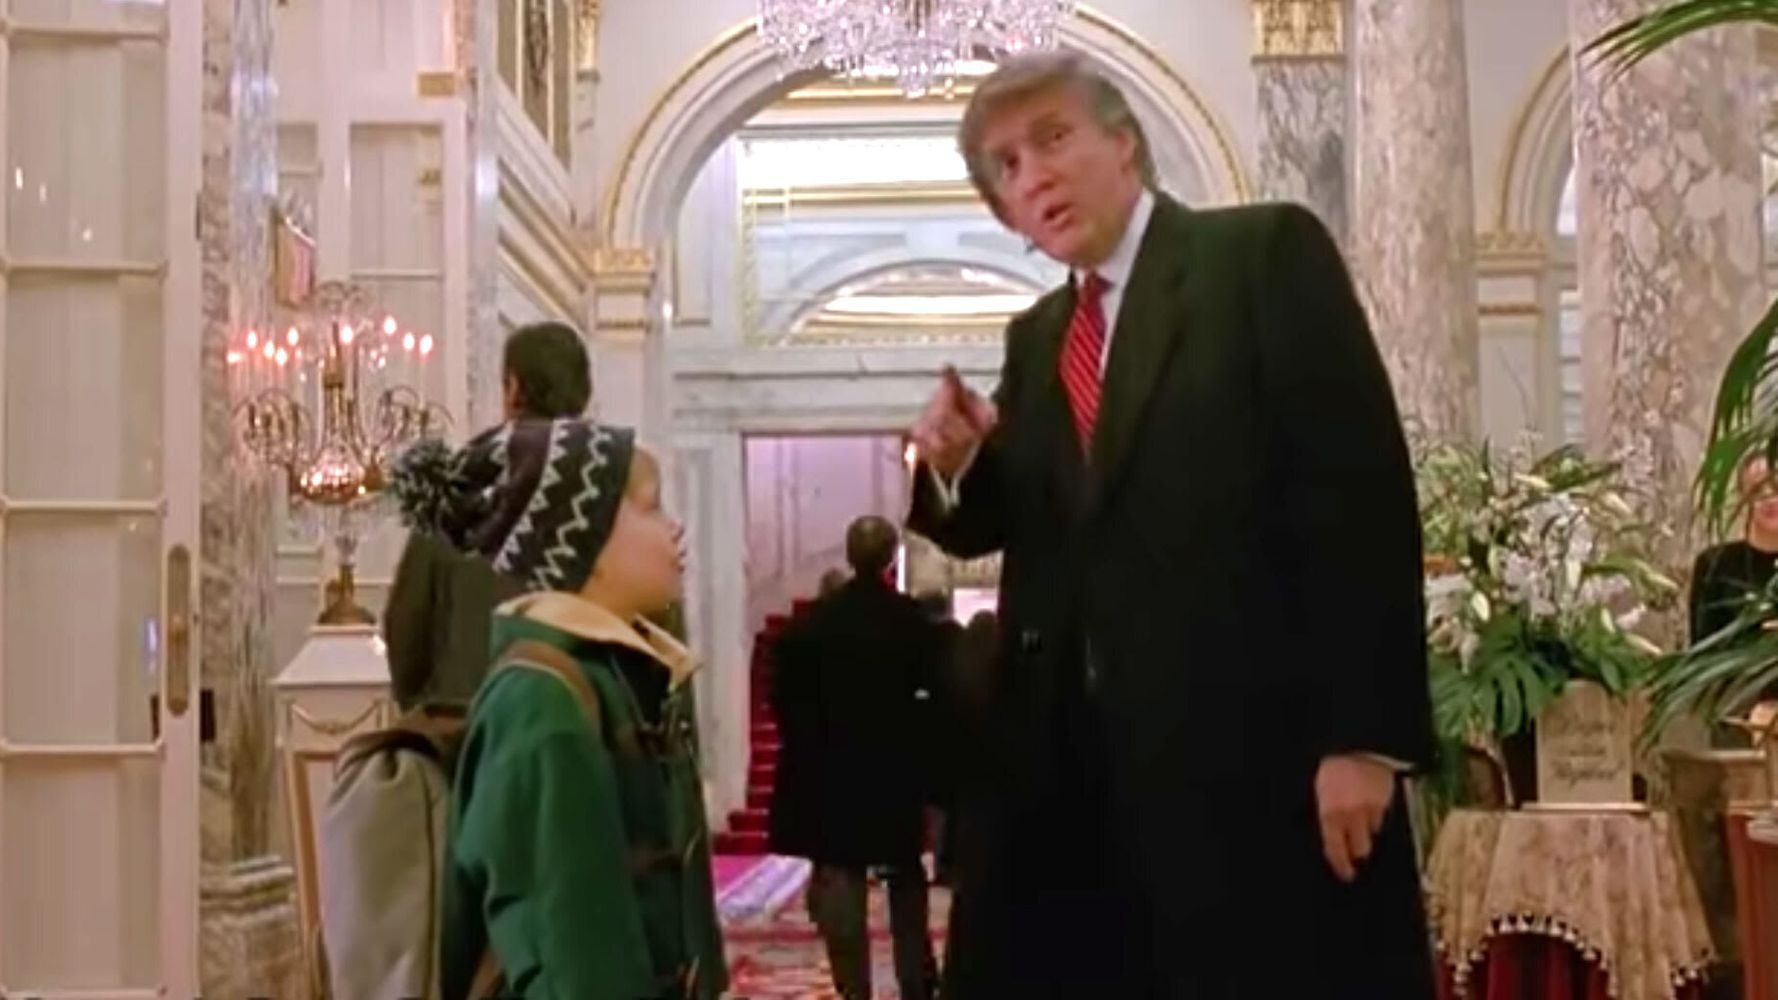 'Home Alone 2' Director Chris Columbus Says Donald Trump 'Bullied' His Way Into The Film